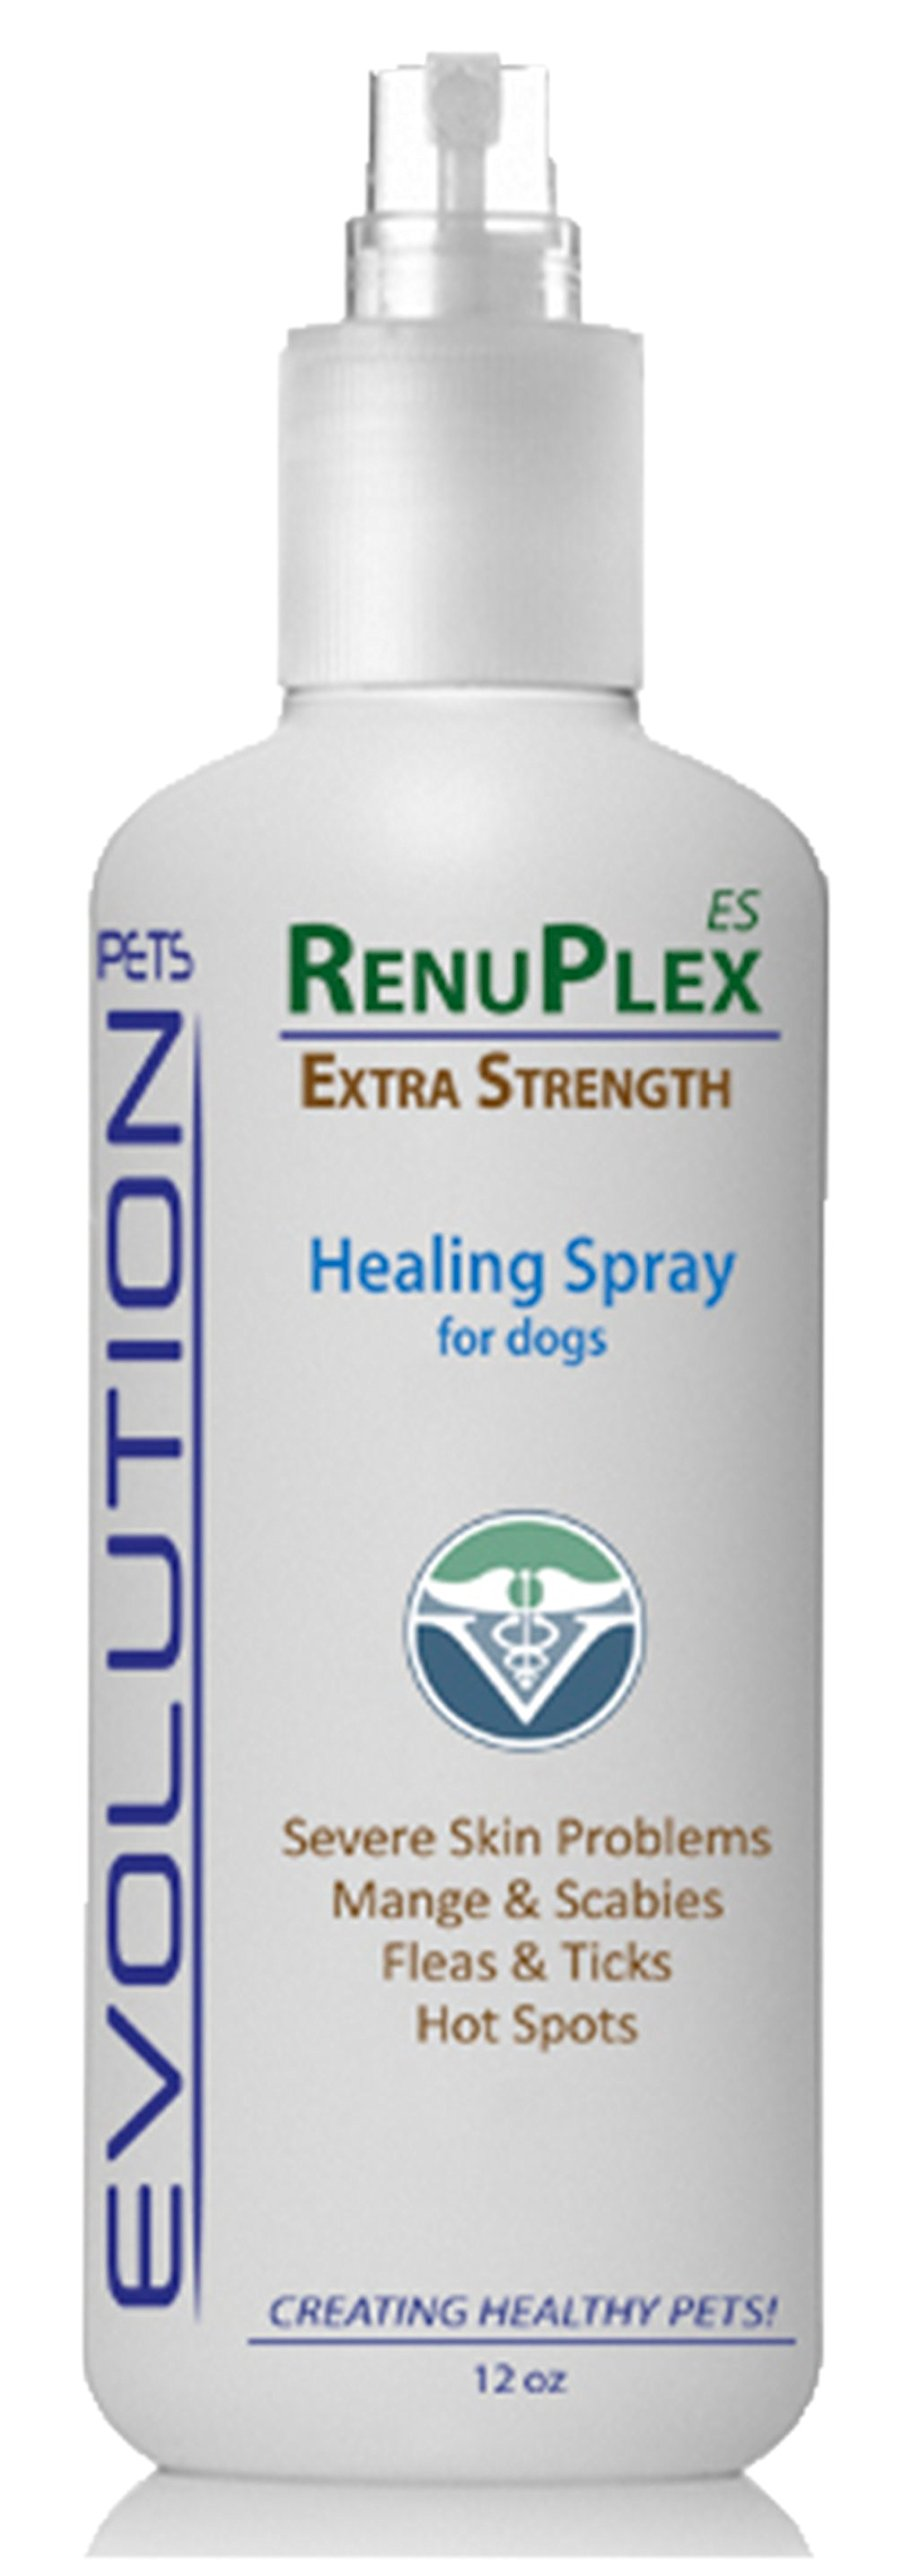 RenuPlex EXTRA Strength Dog Healing Spray for Dog Hot Spots, Mange, Dog Skin Problems Antifungal Dog Hot Spot Spray Also Eliminates Mange, Mites. All Natural. Unconditional Guarantee. Made in USA